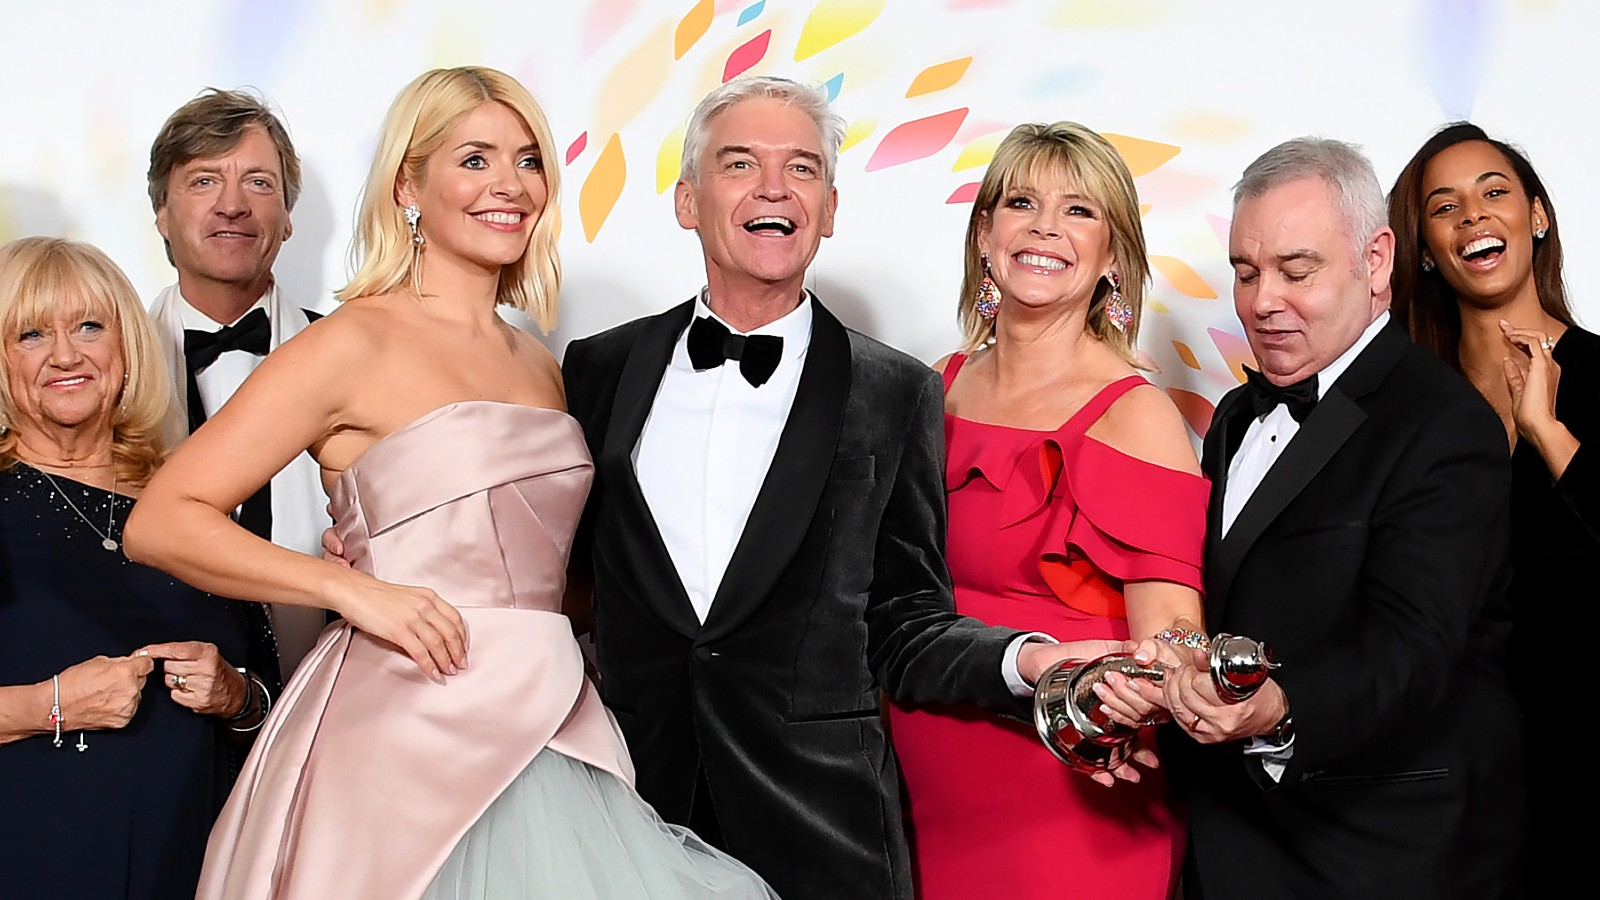 Ce matin, Ruth Langsford, Eamonn Holmes, Holly Willoughby, Phillip Schofield, Richard et Judy Finnegan, et Rochelle Humes.